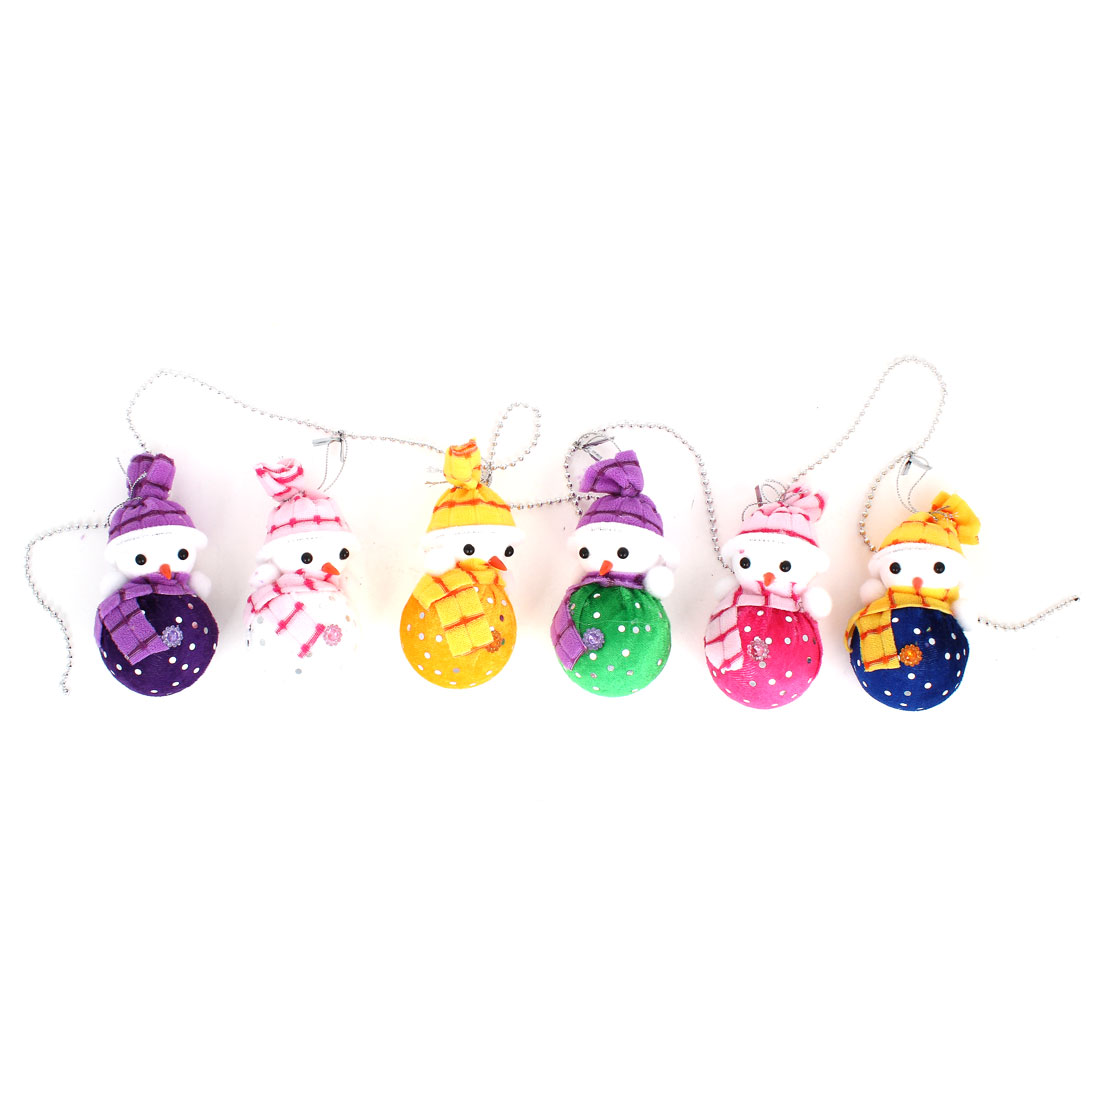 1.3M Plastic Beads Linking Xmas Snowman Pendant 6 in 1 Set for Door Christmas Tree Hanging Decor